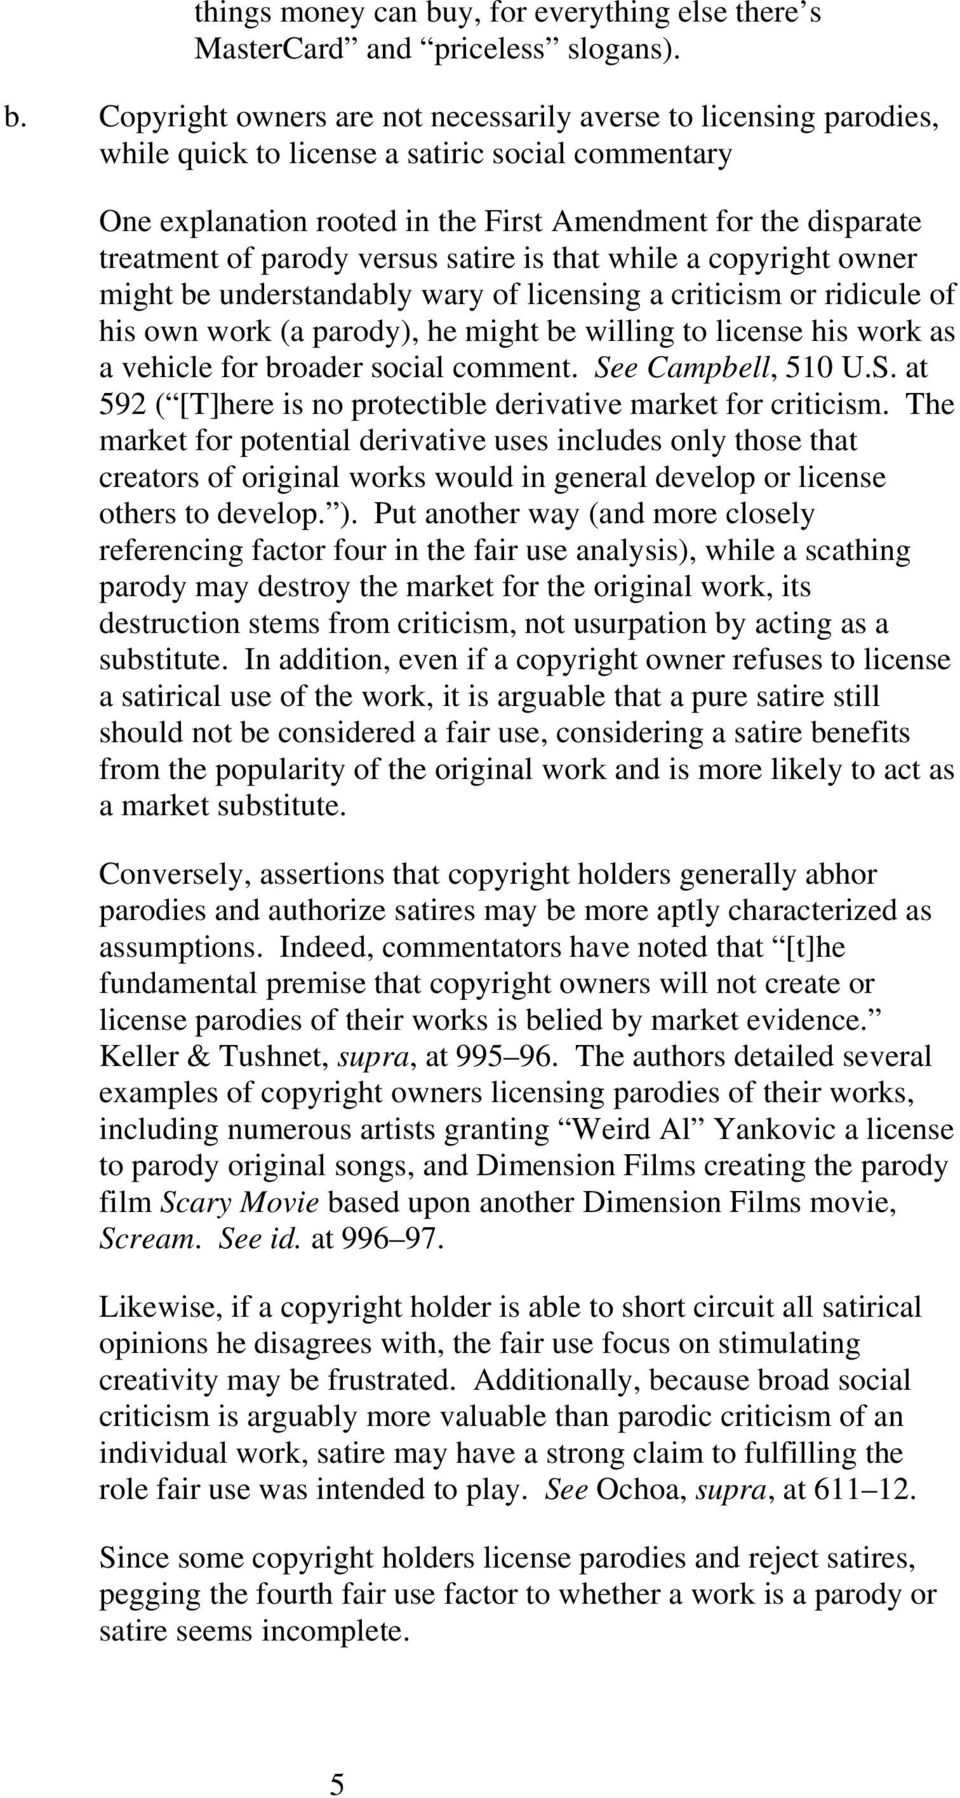 The Satire Parody Distinction In Copyright And Trademark Law Can